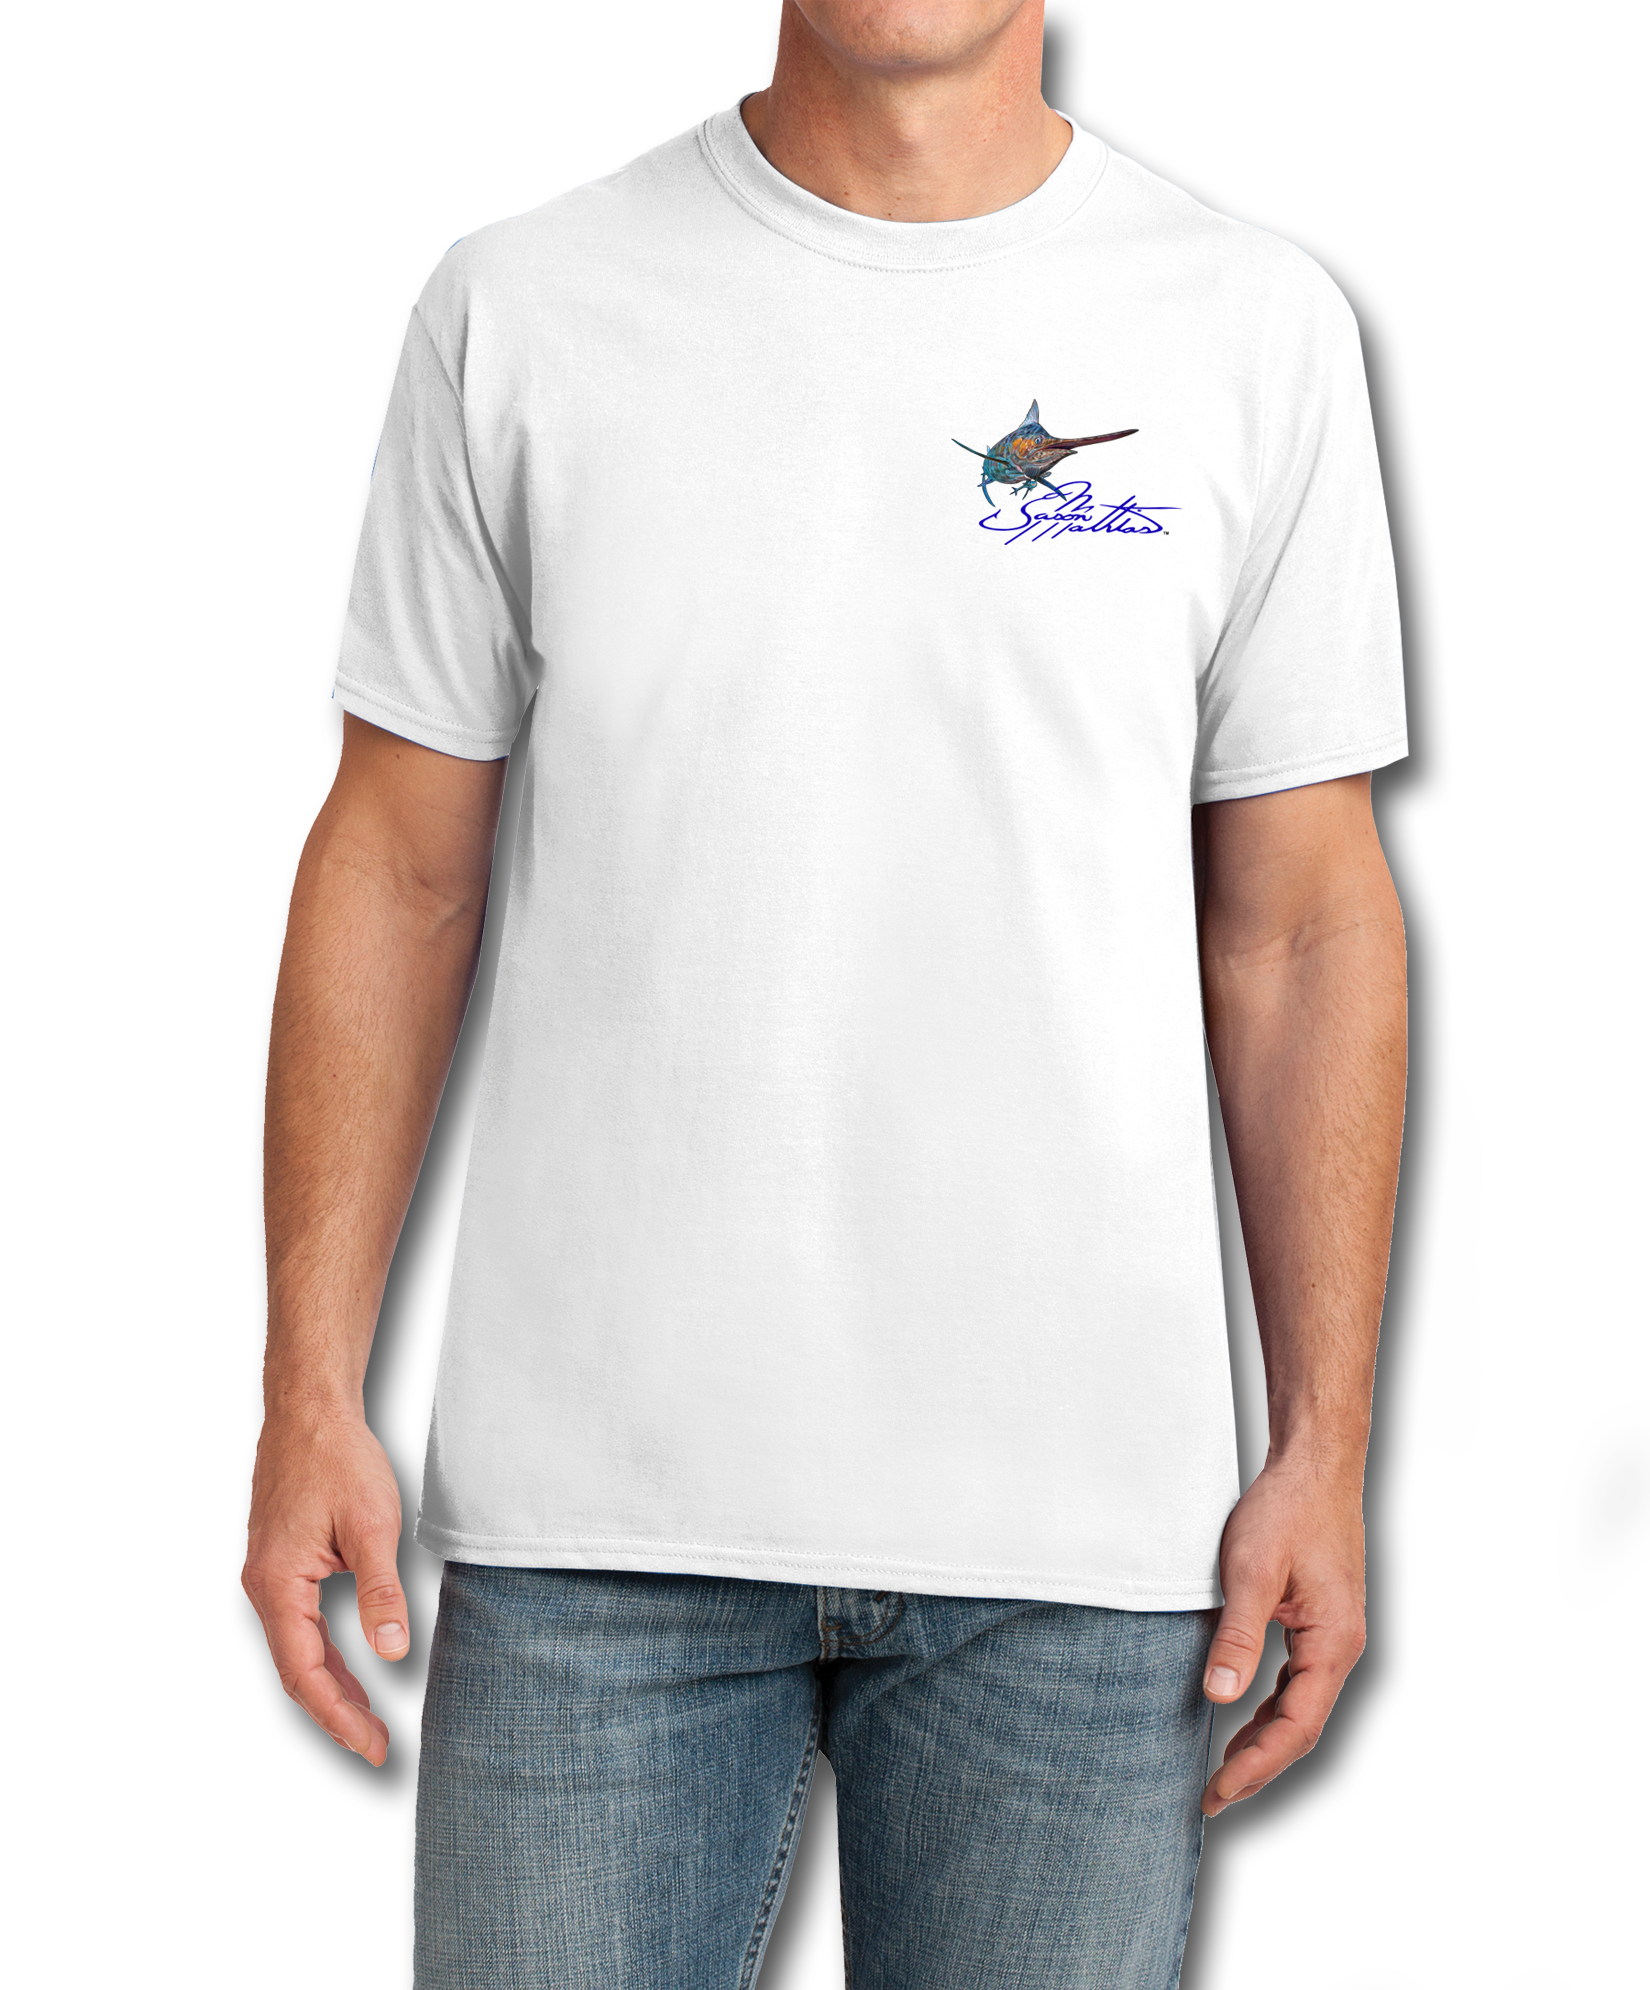 cotton-feel-t-shirt-white-jason-mathias-art-blue-marlin-sailfish.png